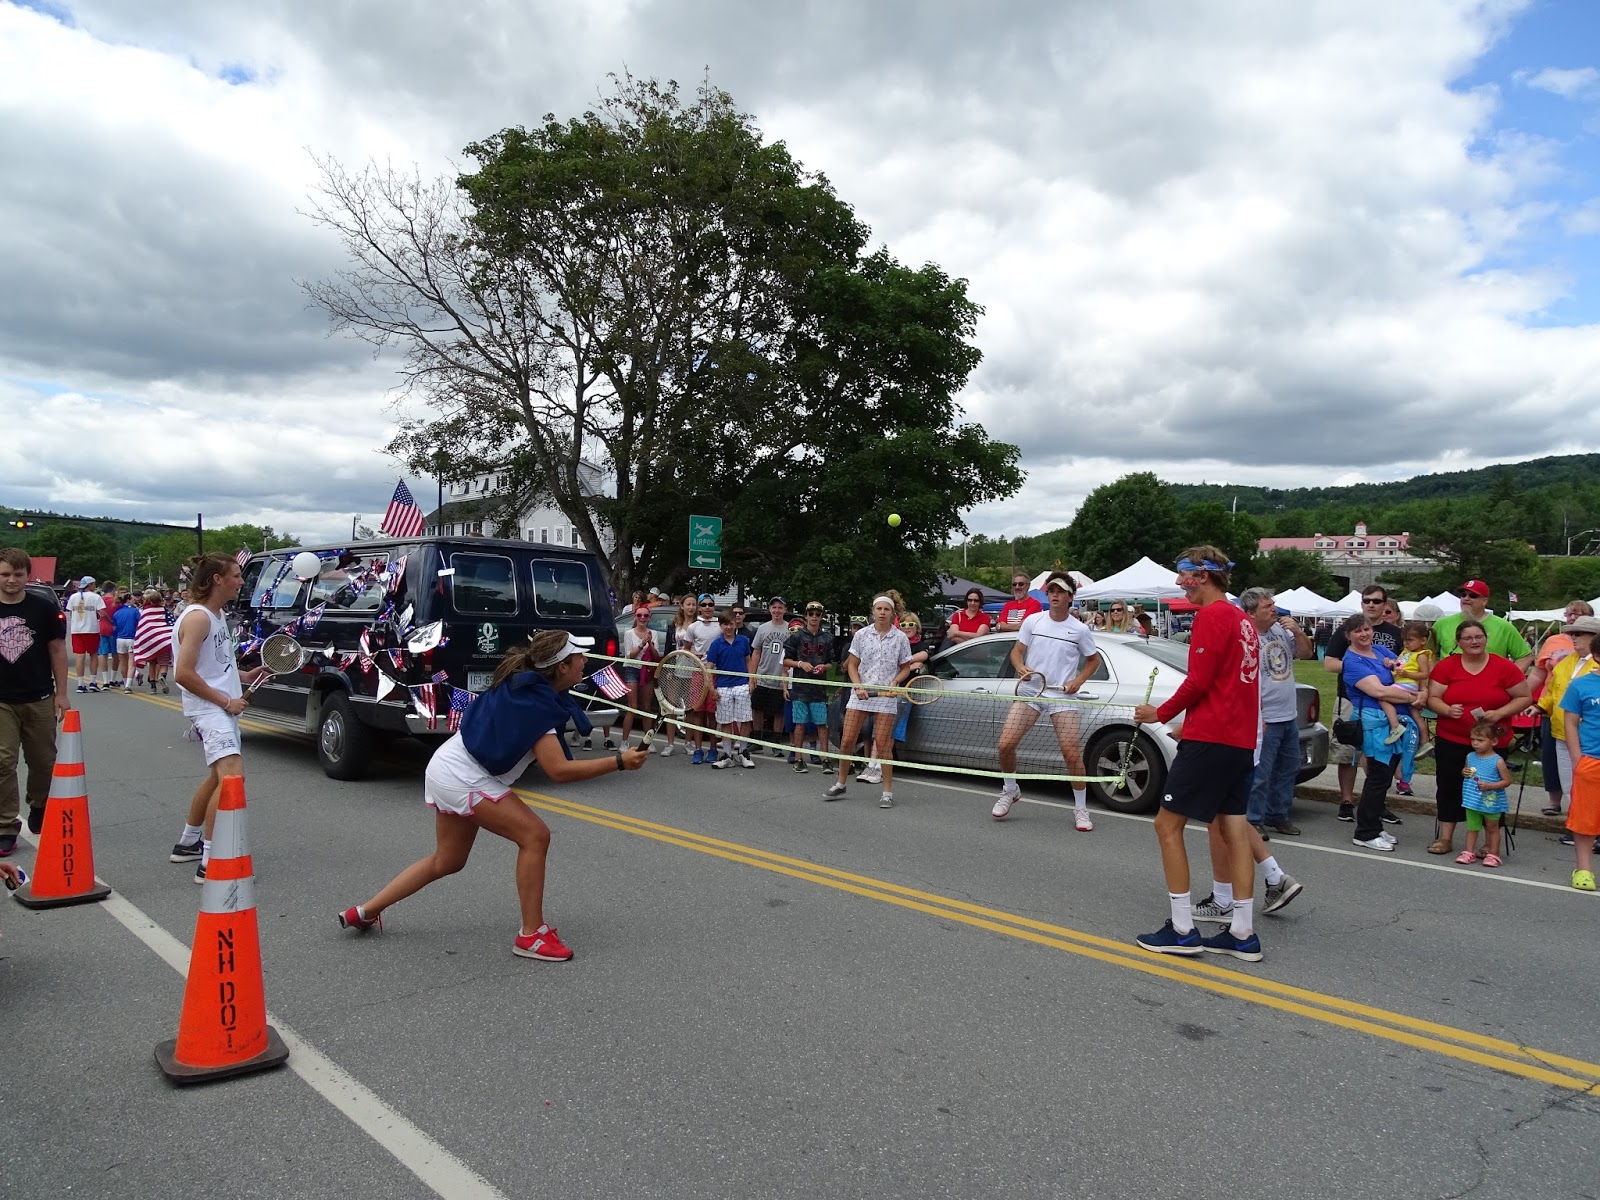 Barefoot Adventure 2016: July 2nd 26th Annual Old Home Days parade ...